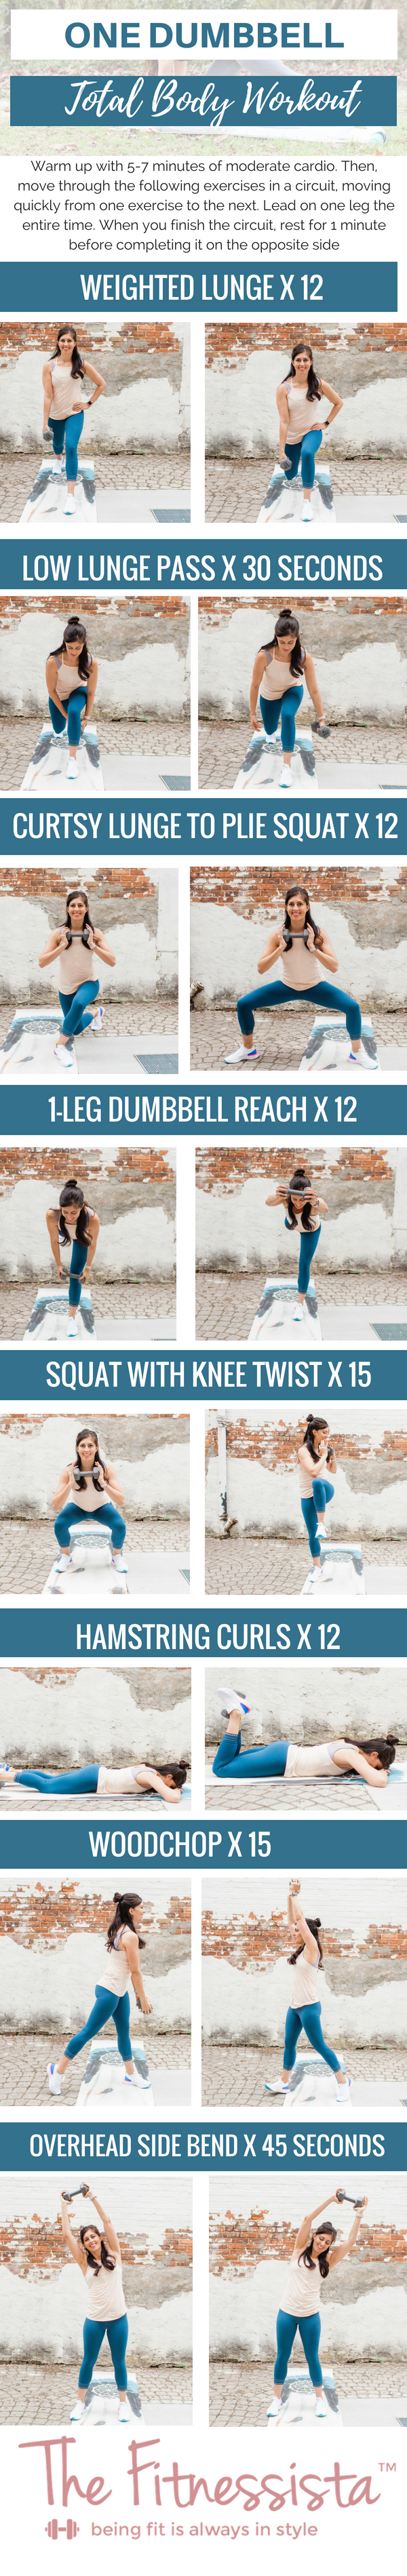 one dumbbell total body workout